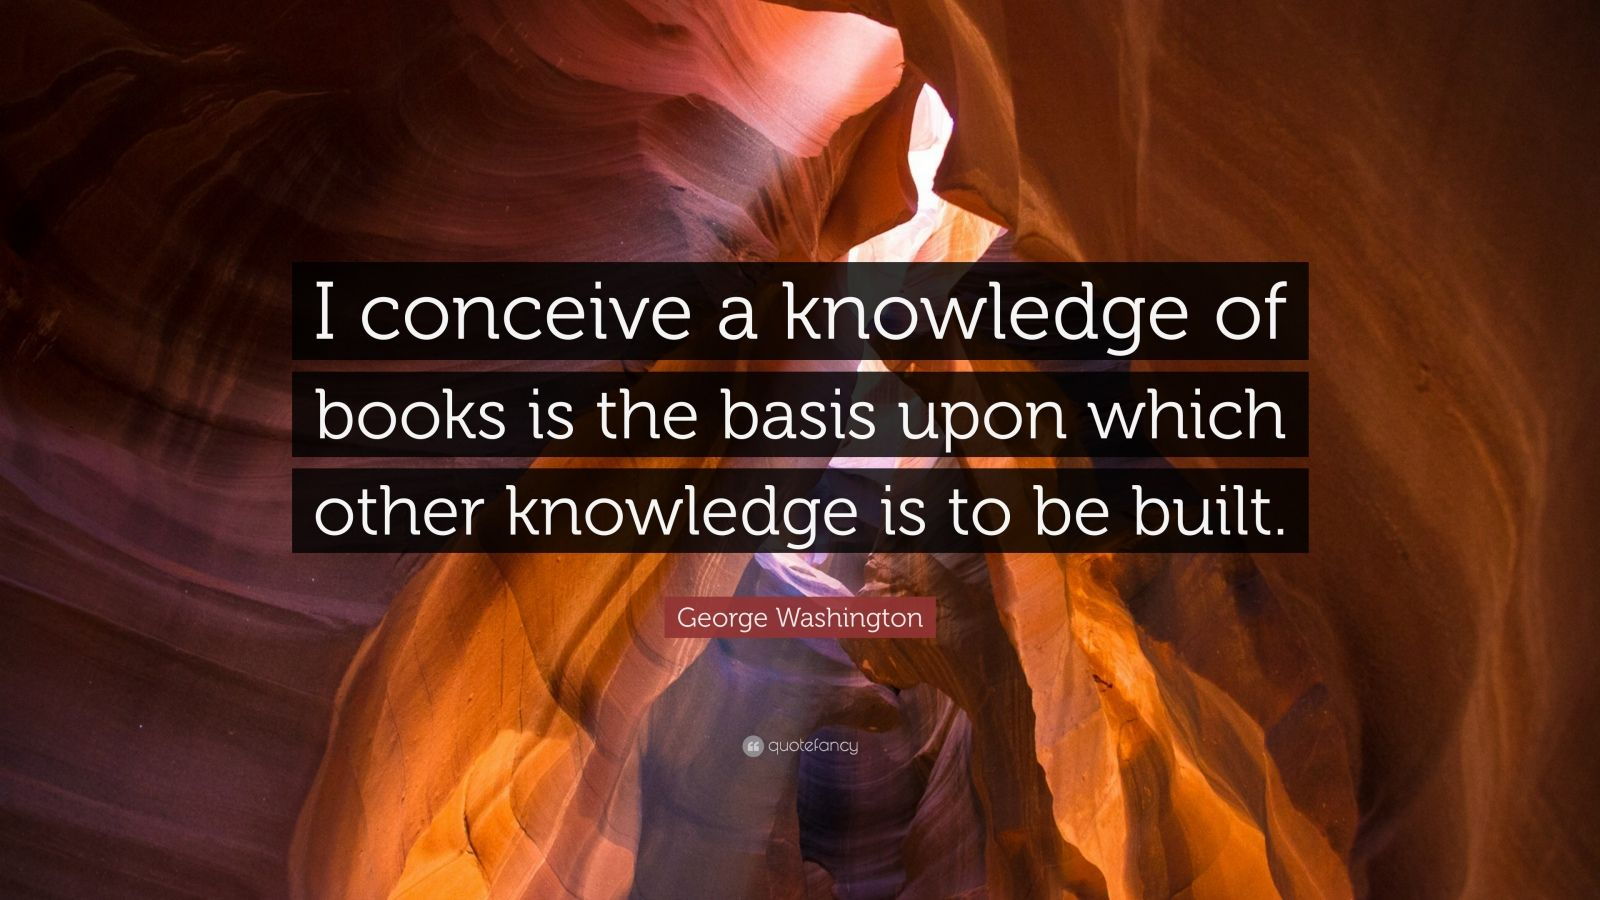 """George Washington Quote: """"I conceive a knowledge of books is the basis upon which other knowledge is to be built."""""""